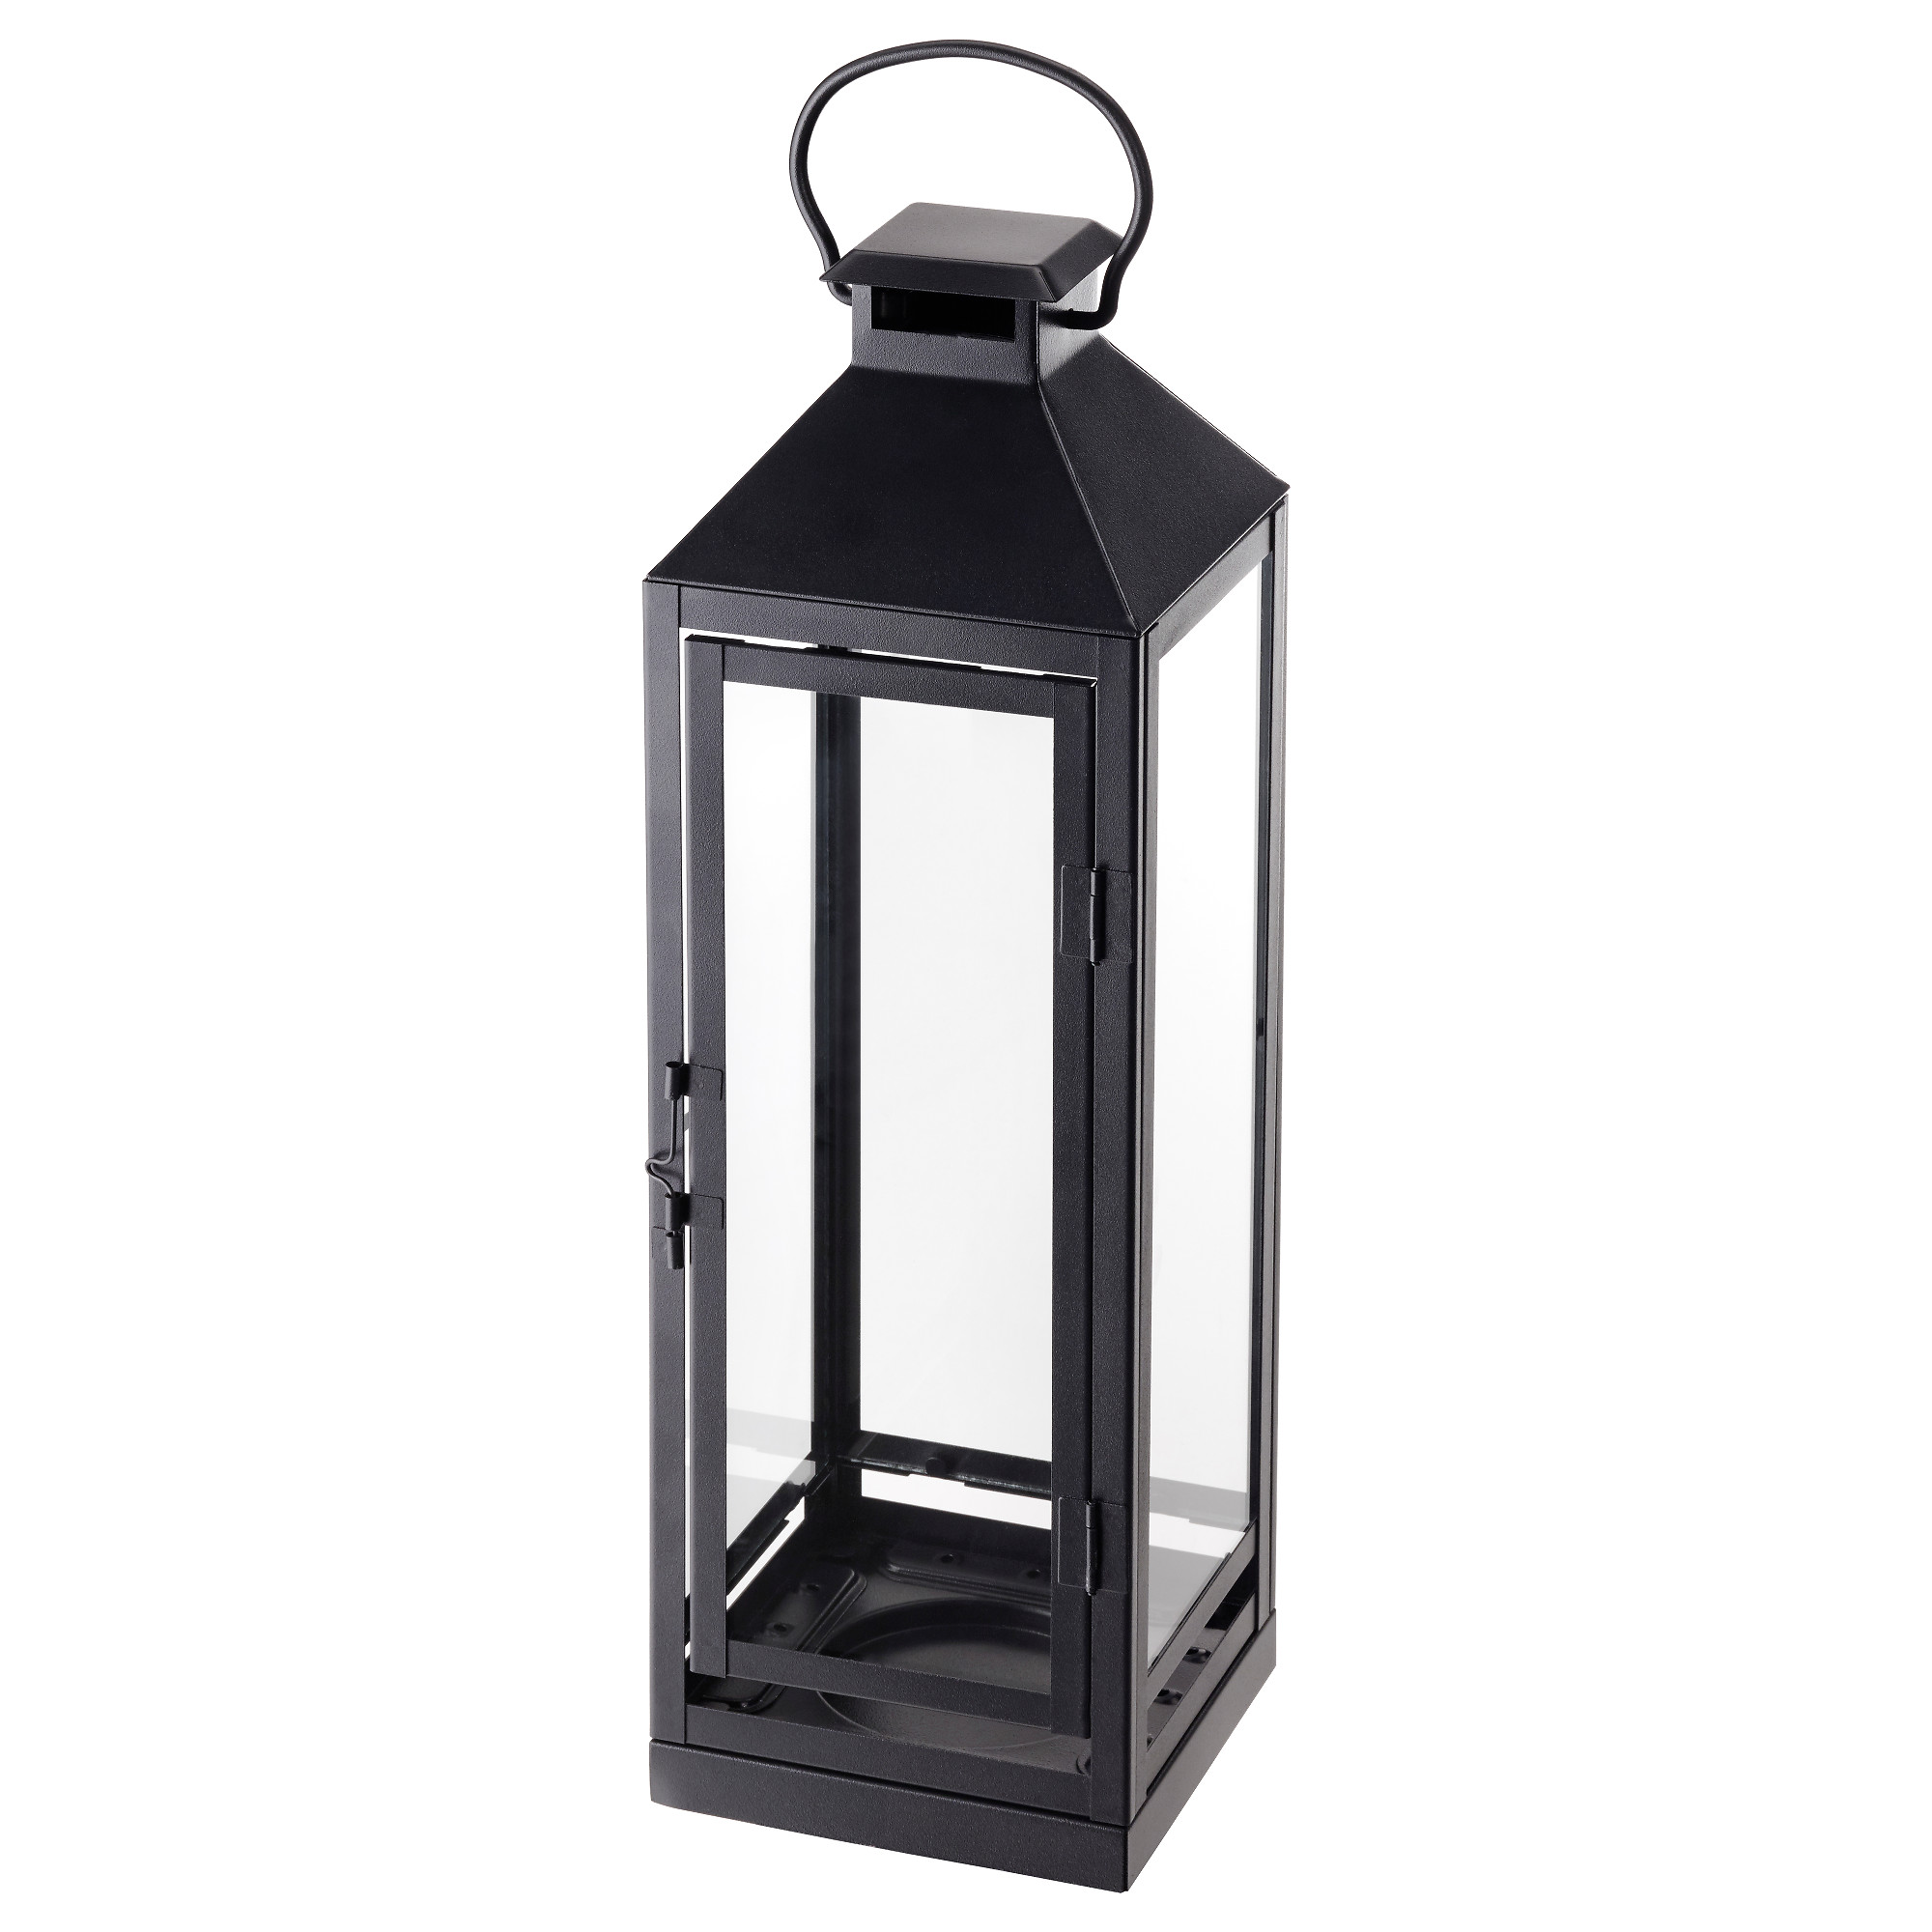 Candles lanterns candle holders votives ikea lagrad lantern for candle indooroutdoor reviewsmspy